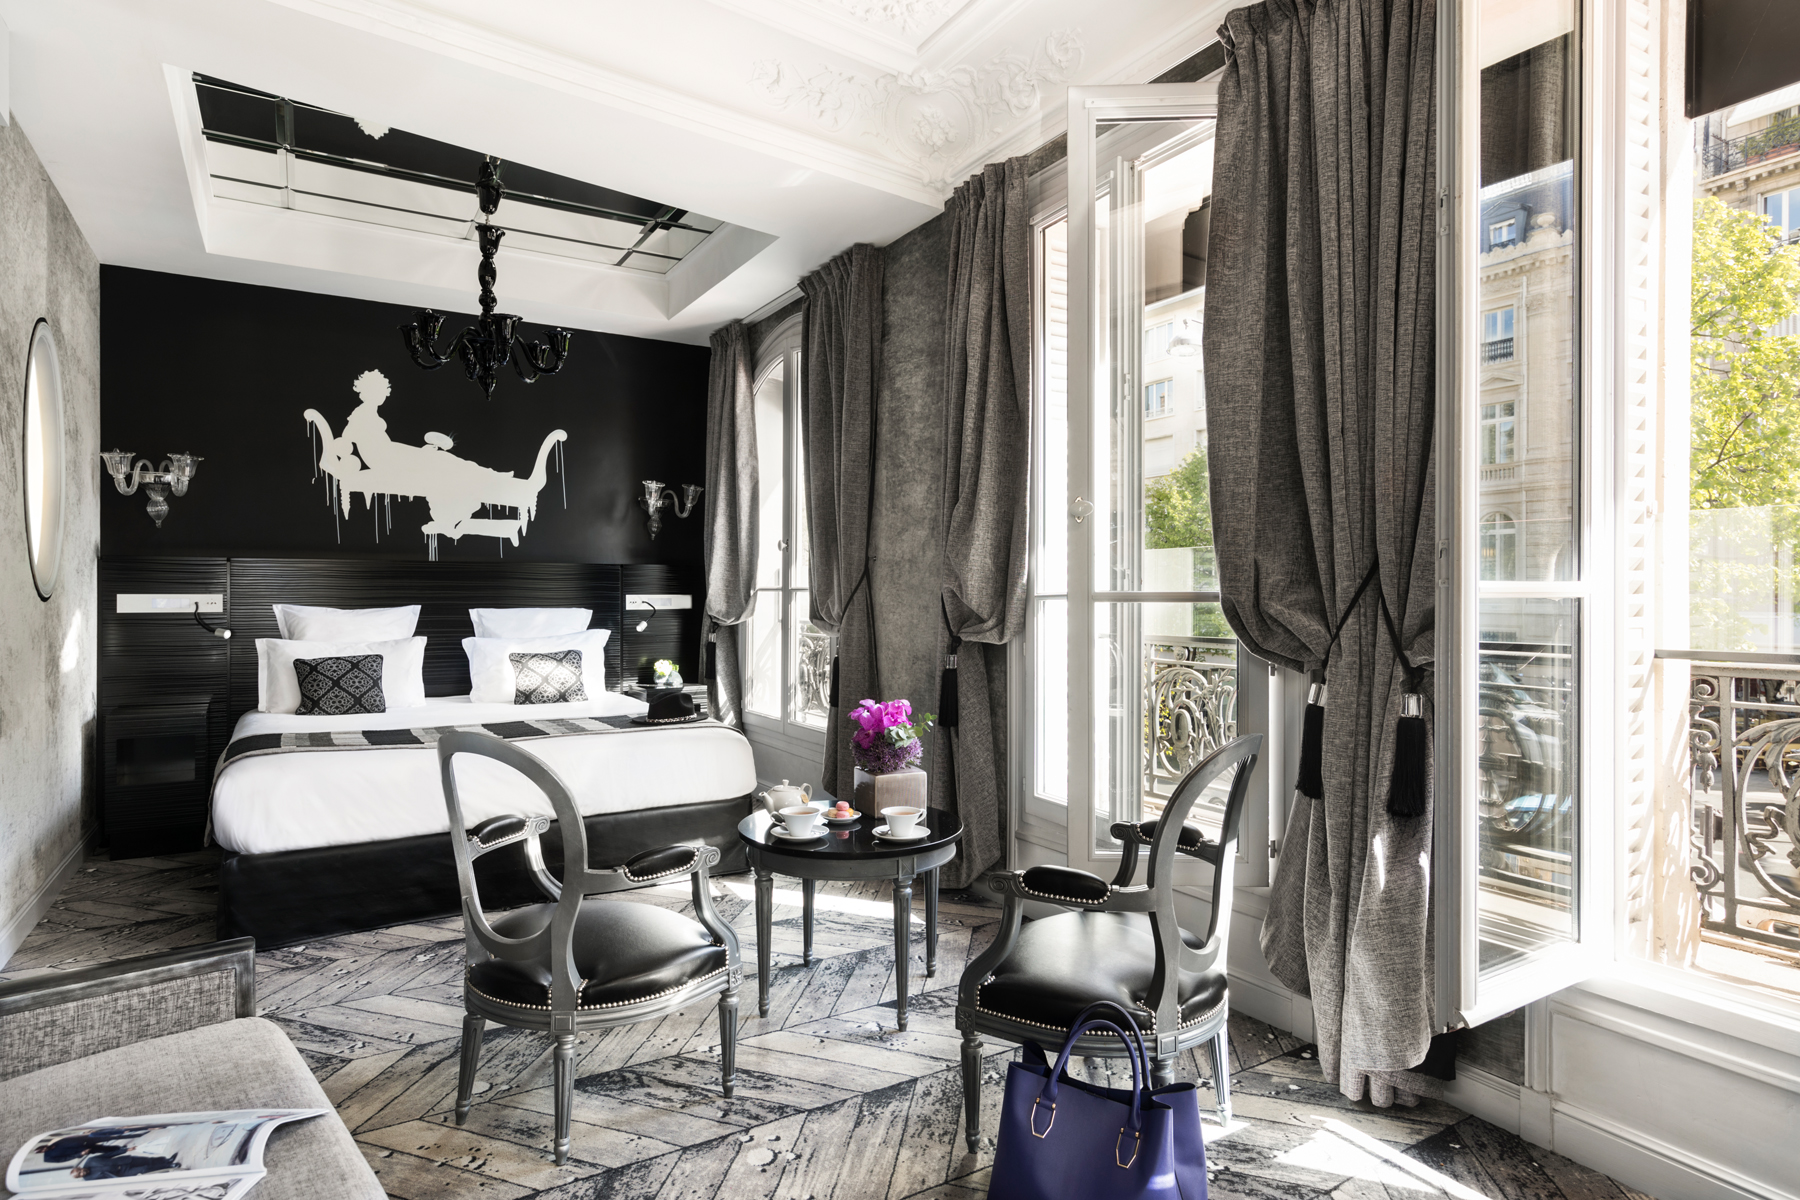 101/Champs Elysees/Suites/PAGE SUITES - SECTION 2 - JUNIOR SUITE 2.jpg